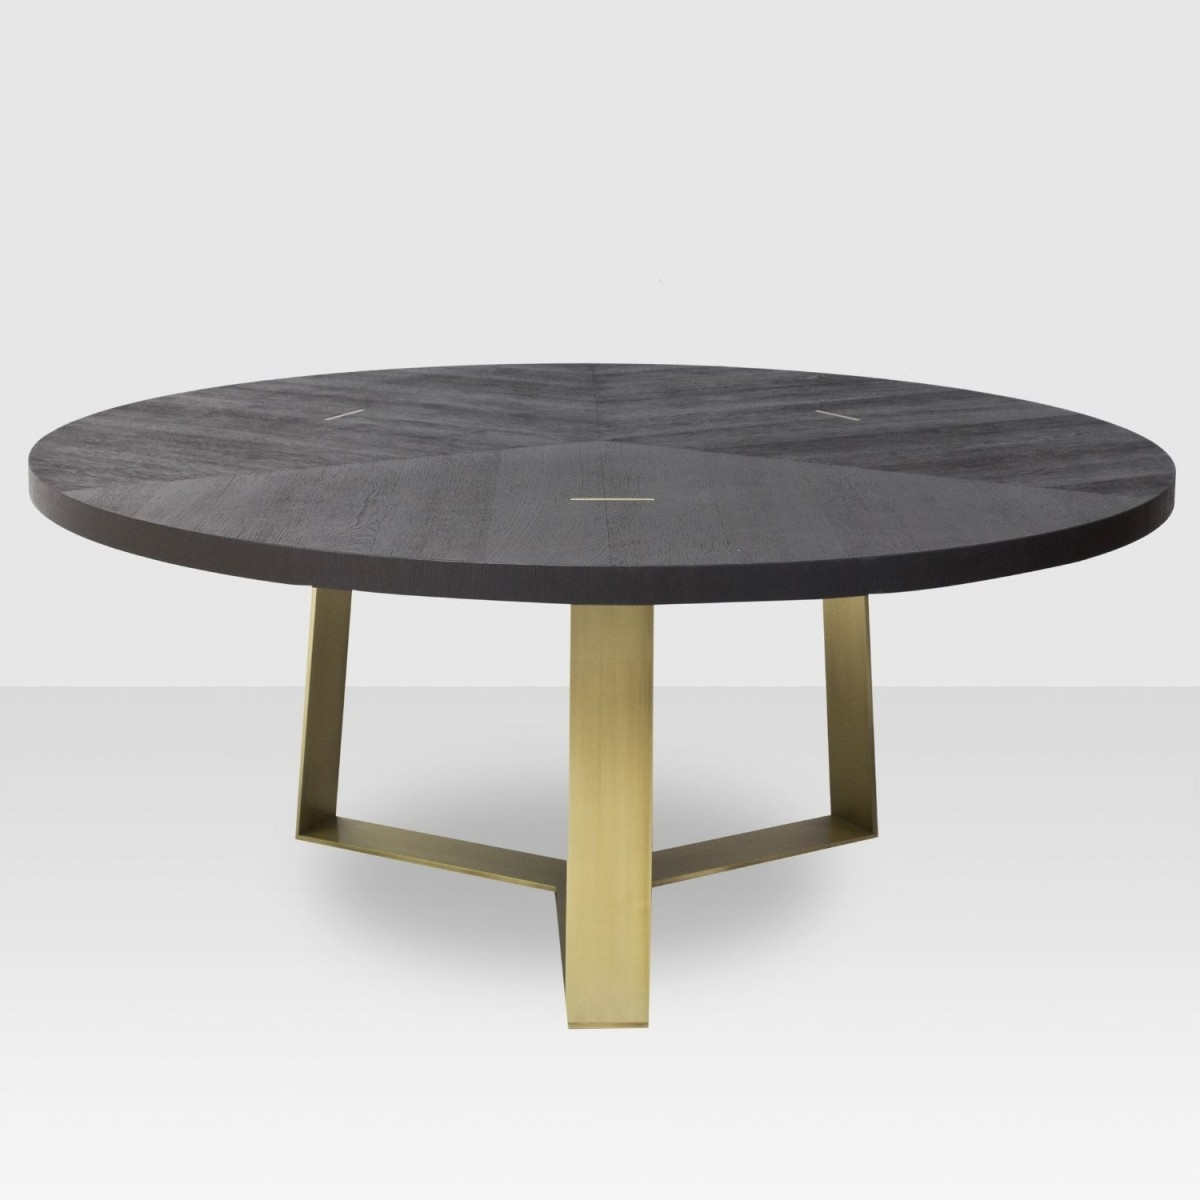 Recent Sienna Dining Table – Elte Within Outdoor Sienna Dining Tables (View 18 of 25)